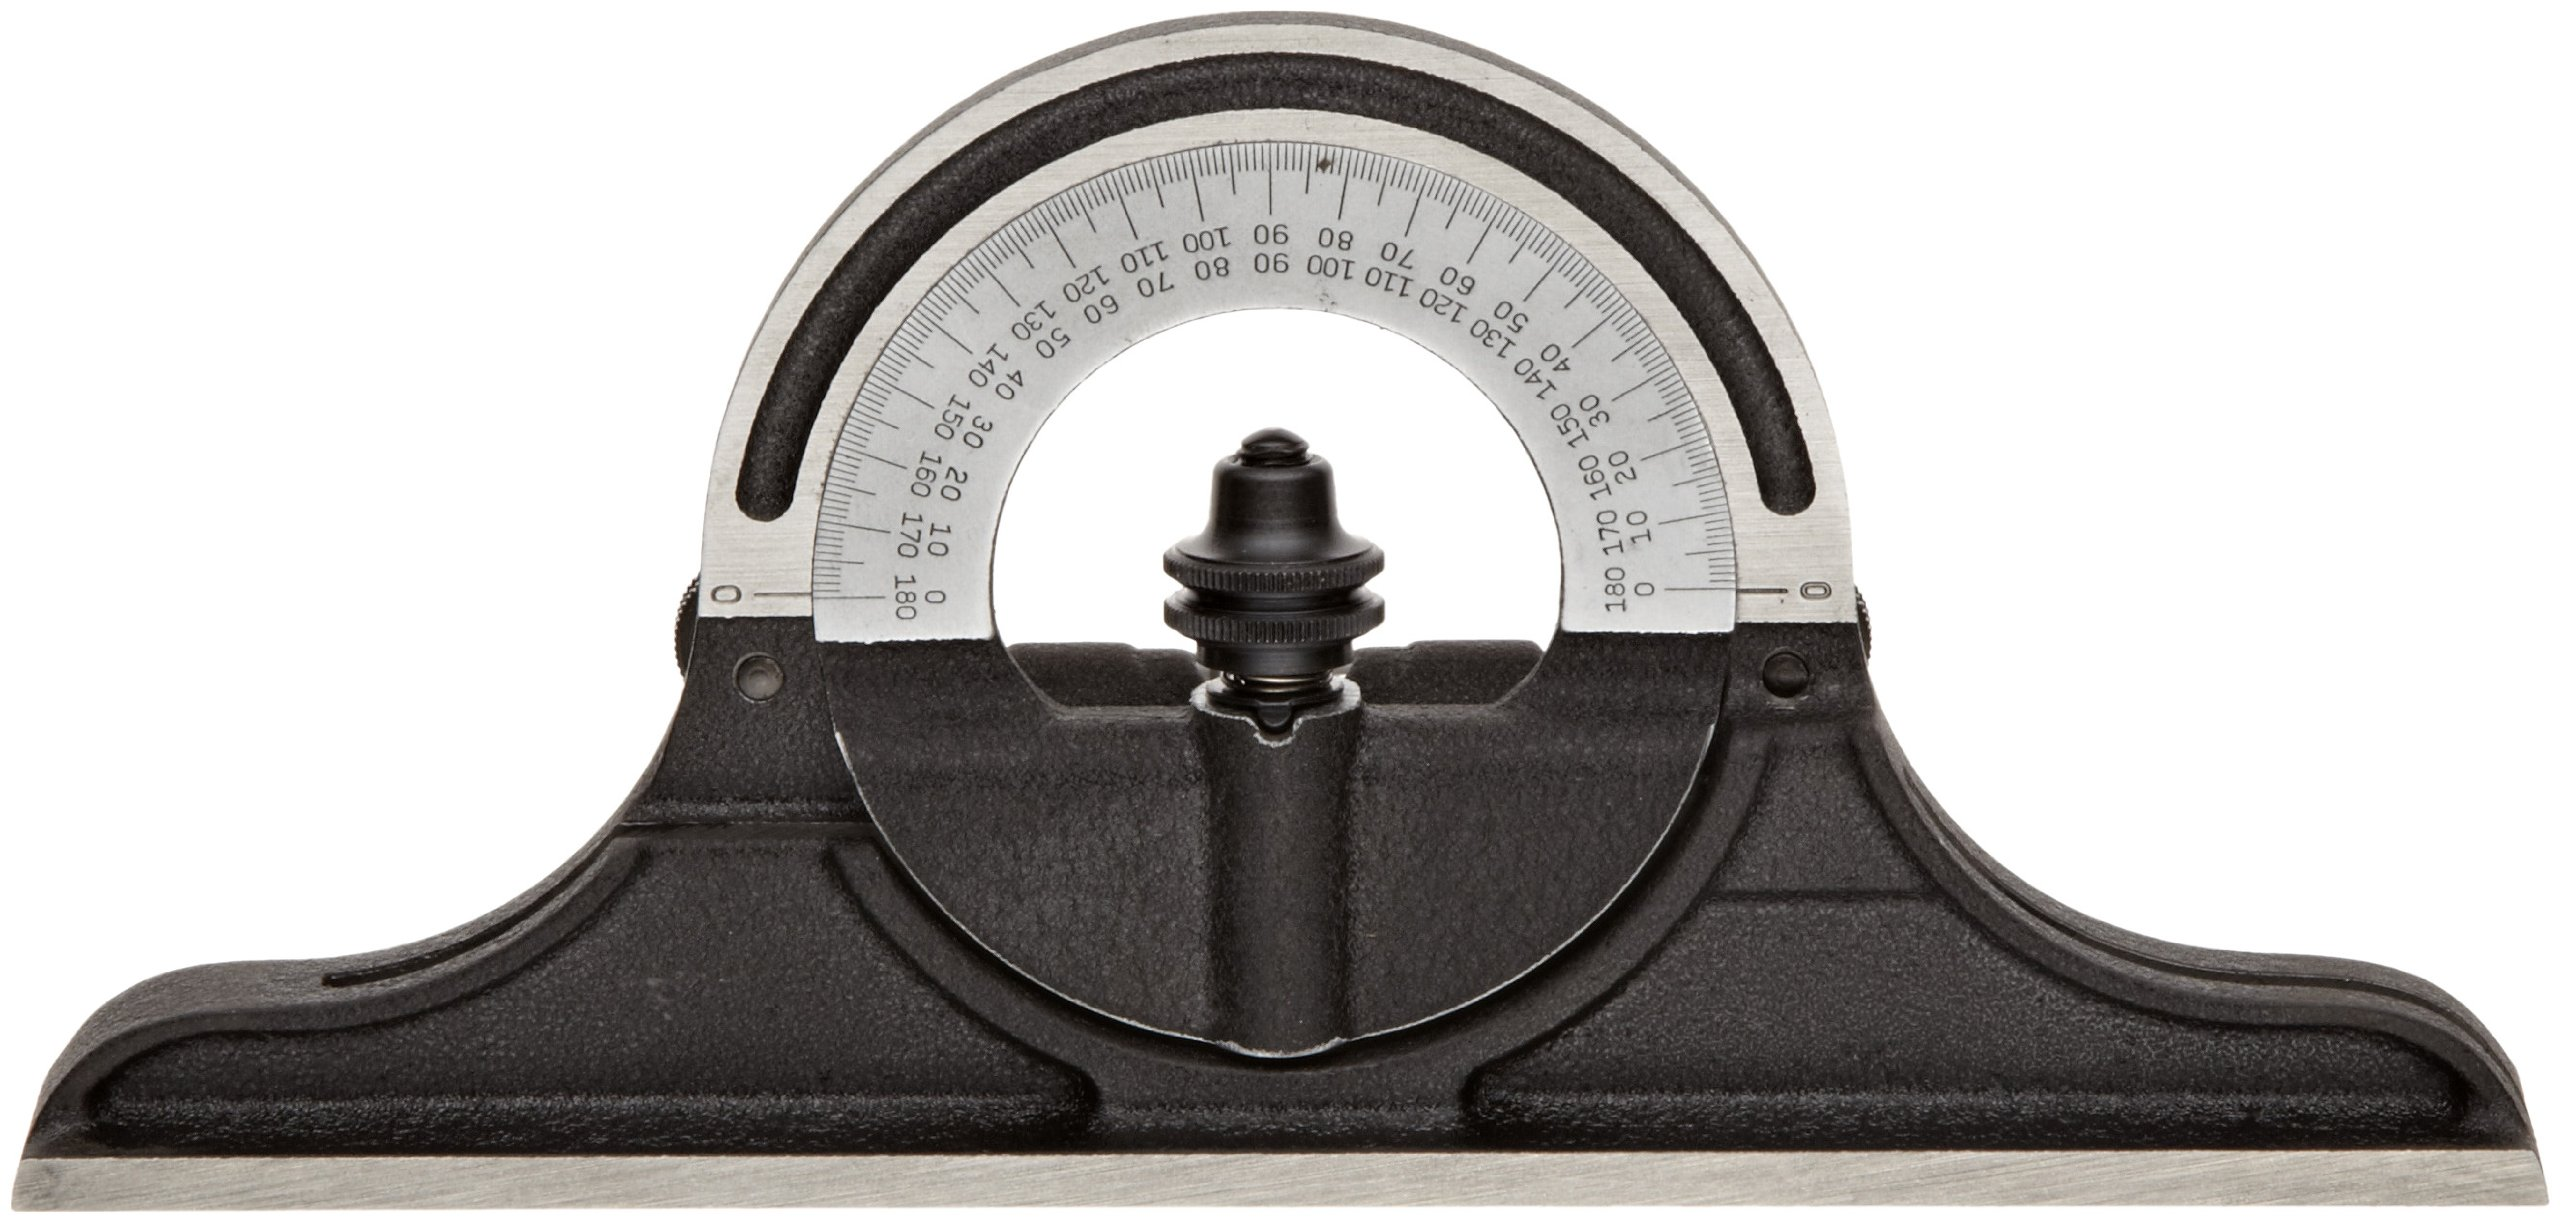 Starrett CPR-1224W Cast Iron Reversible Protractor Head For Combination Squares, Combination Sets And Bevel Protractors by Starrett